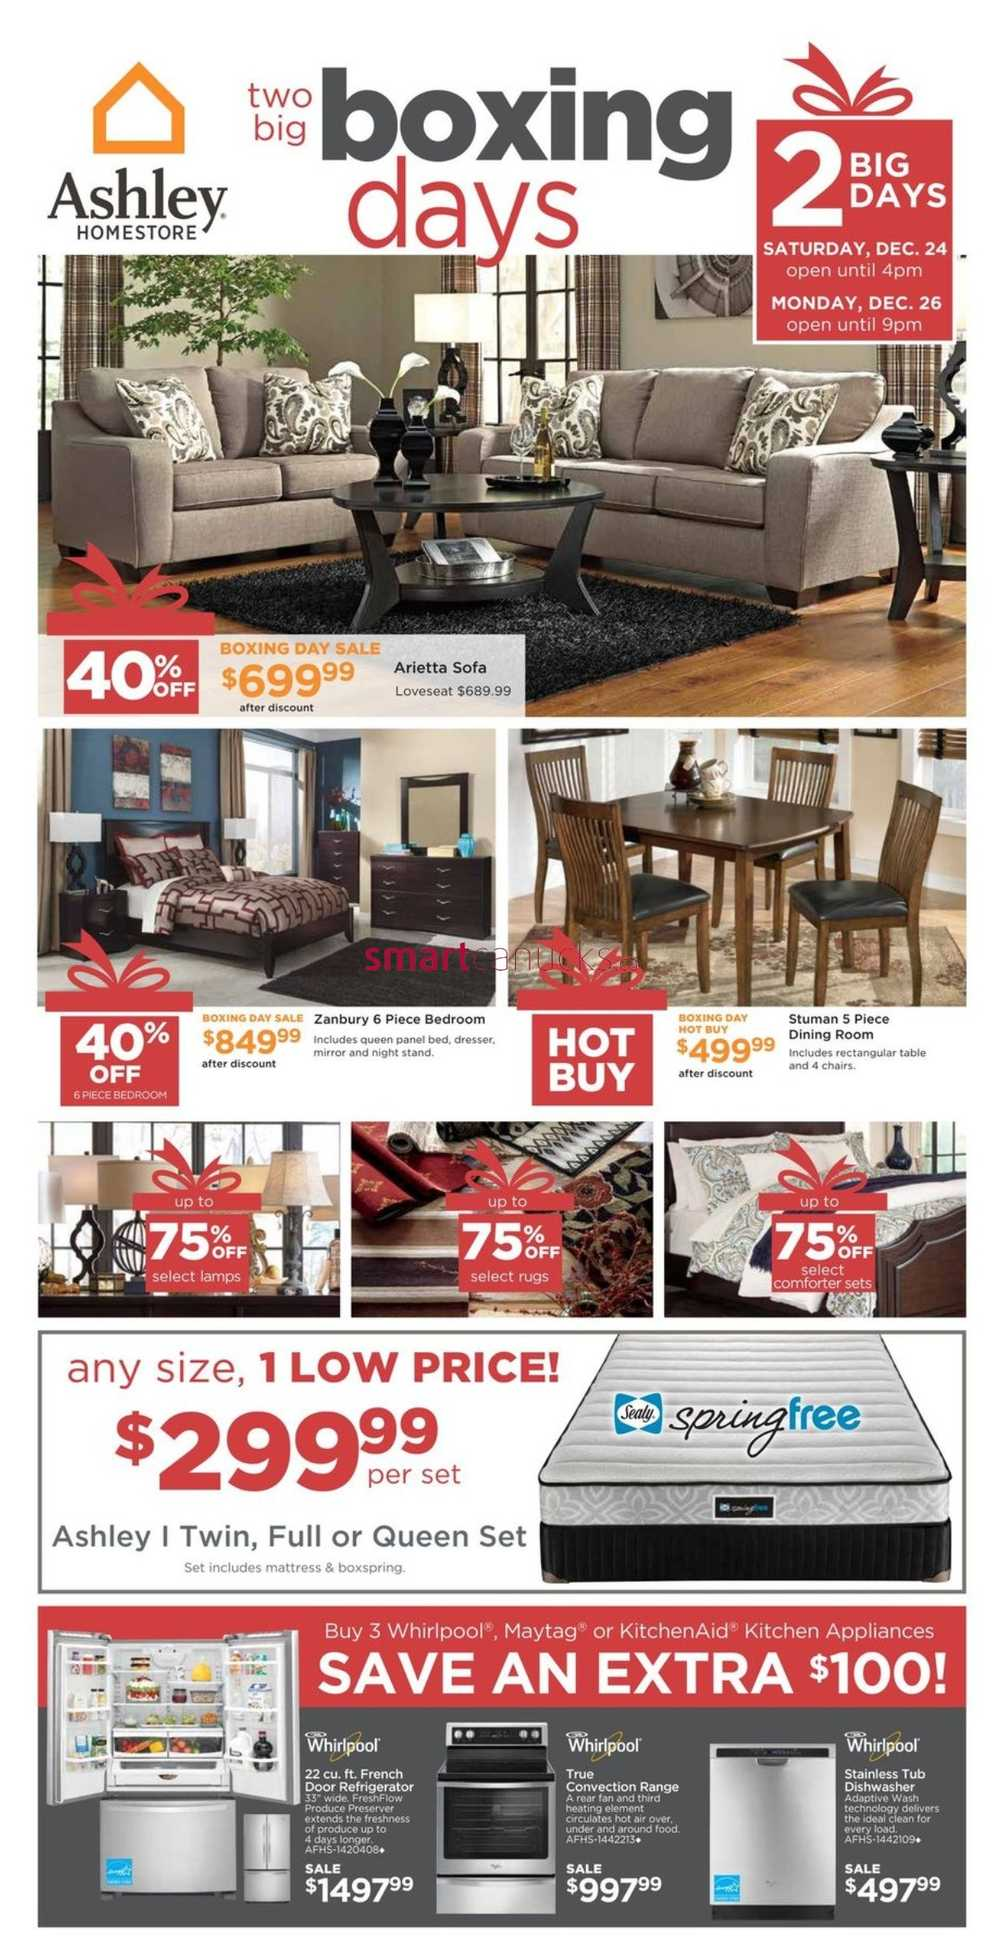 Ashley Homestore West Boxing Day Flyer December 24 26